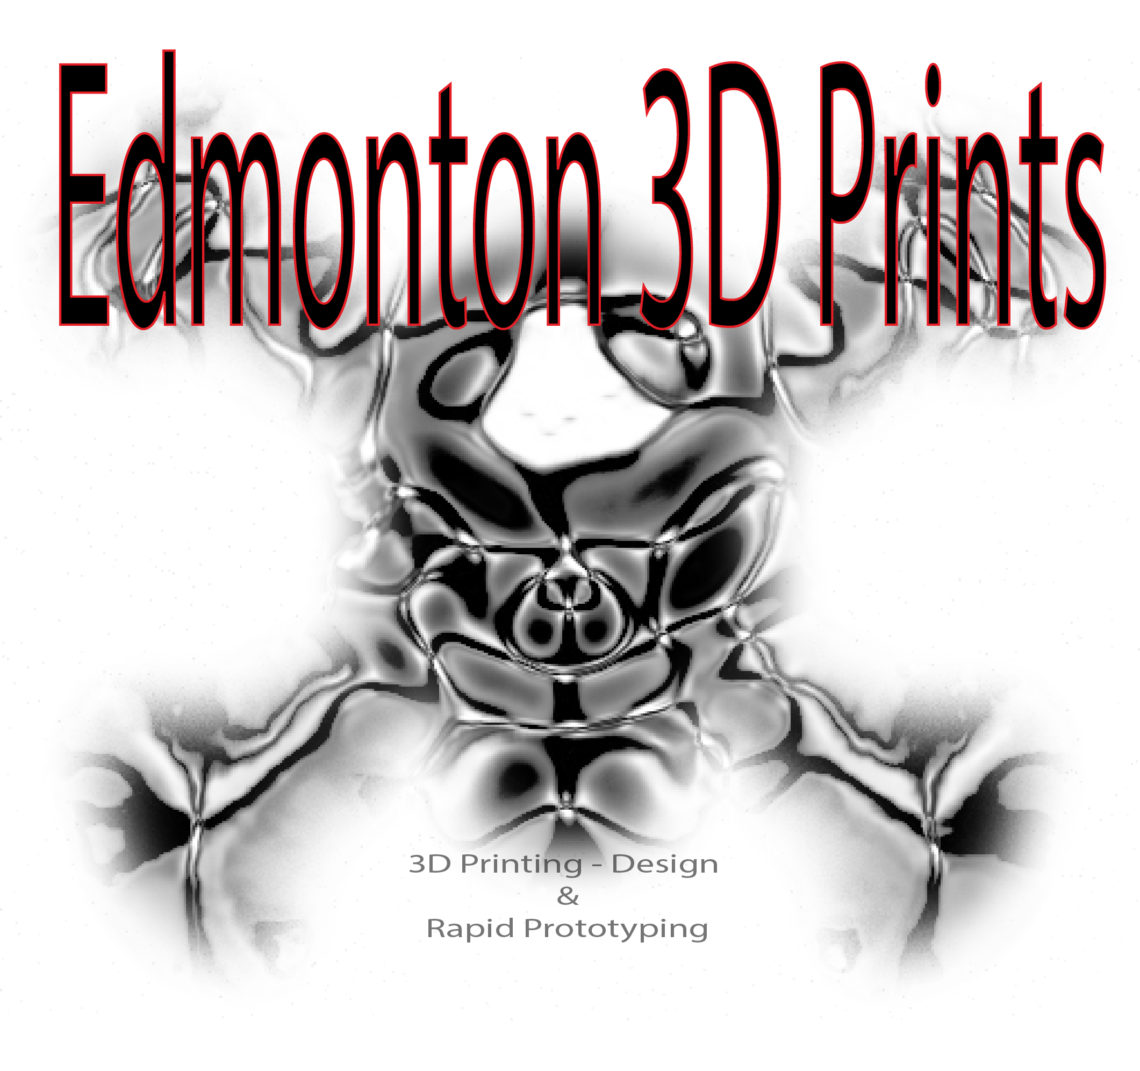 Autodesk 123d Design Software Home Interior Trends Offers Free Circuit Gt Engineeringcom Stl Files 3d Print Models Sites Edmonton Prints Download